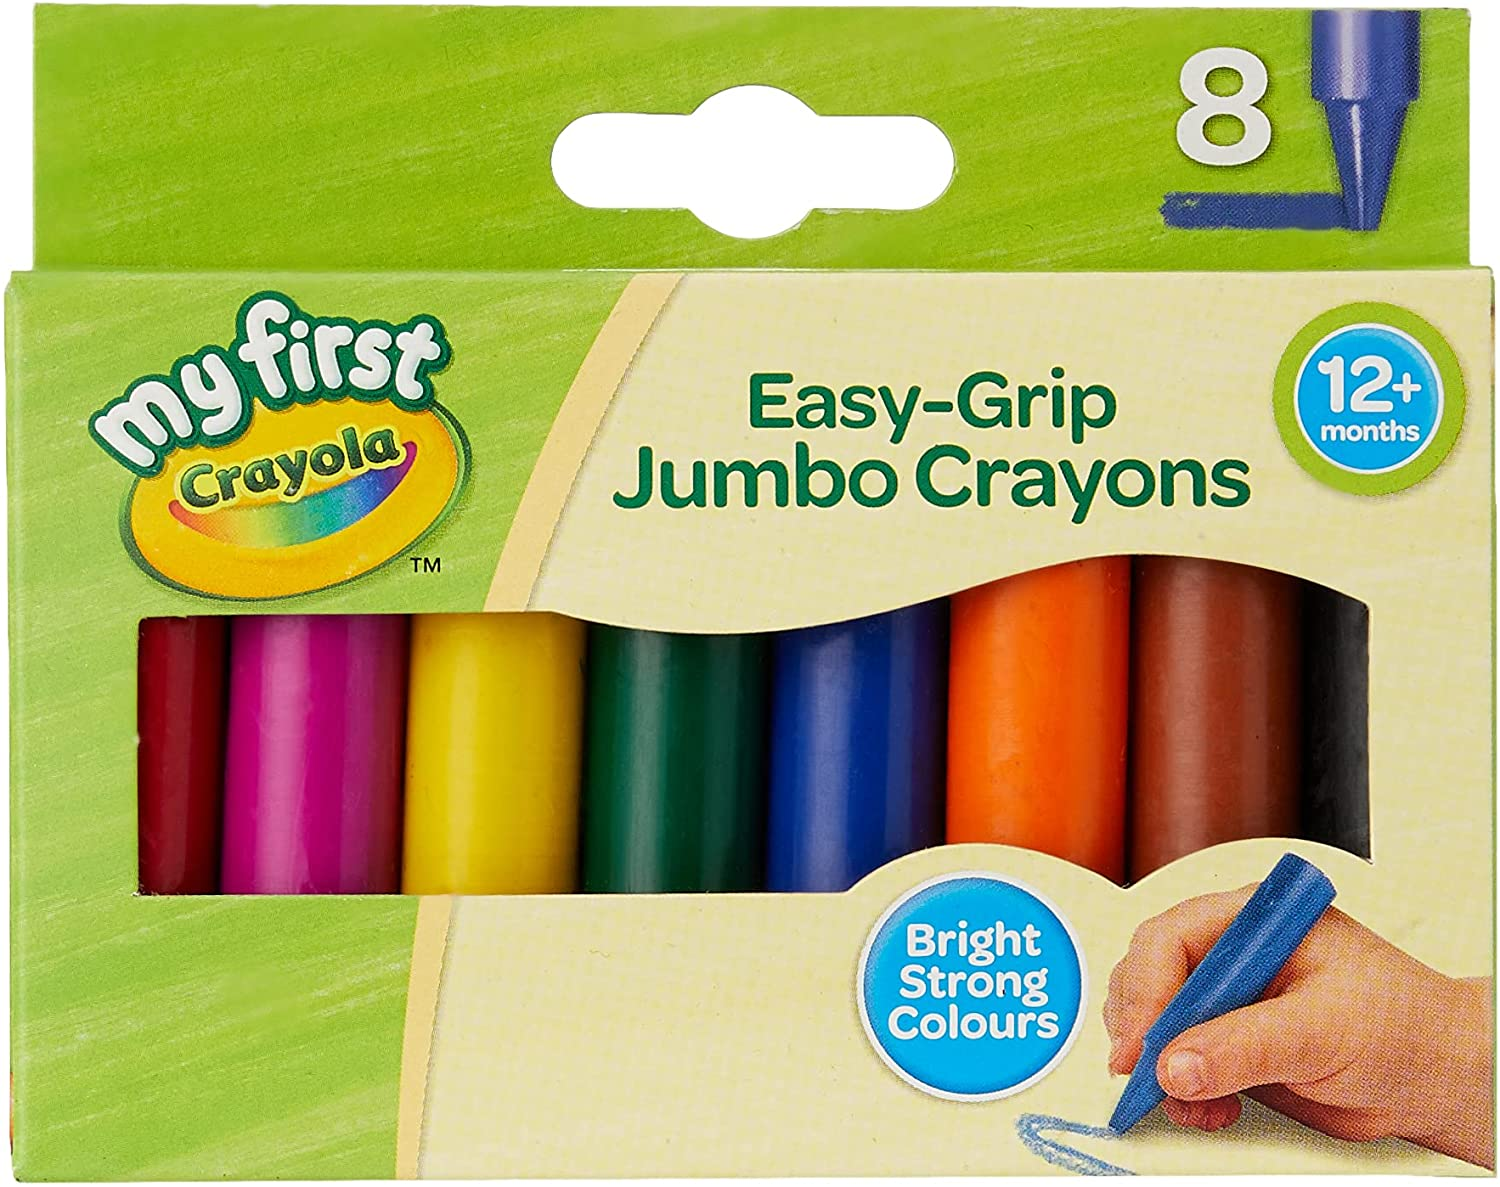 Crayola My First Jumbo Branded goods Safety and trust Crayons 8 Pieces